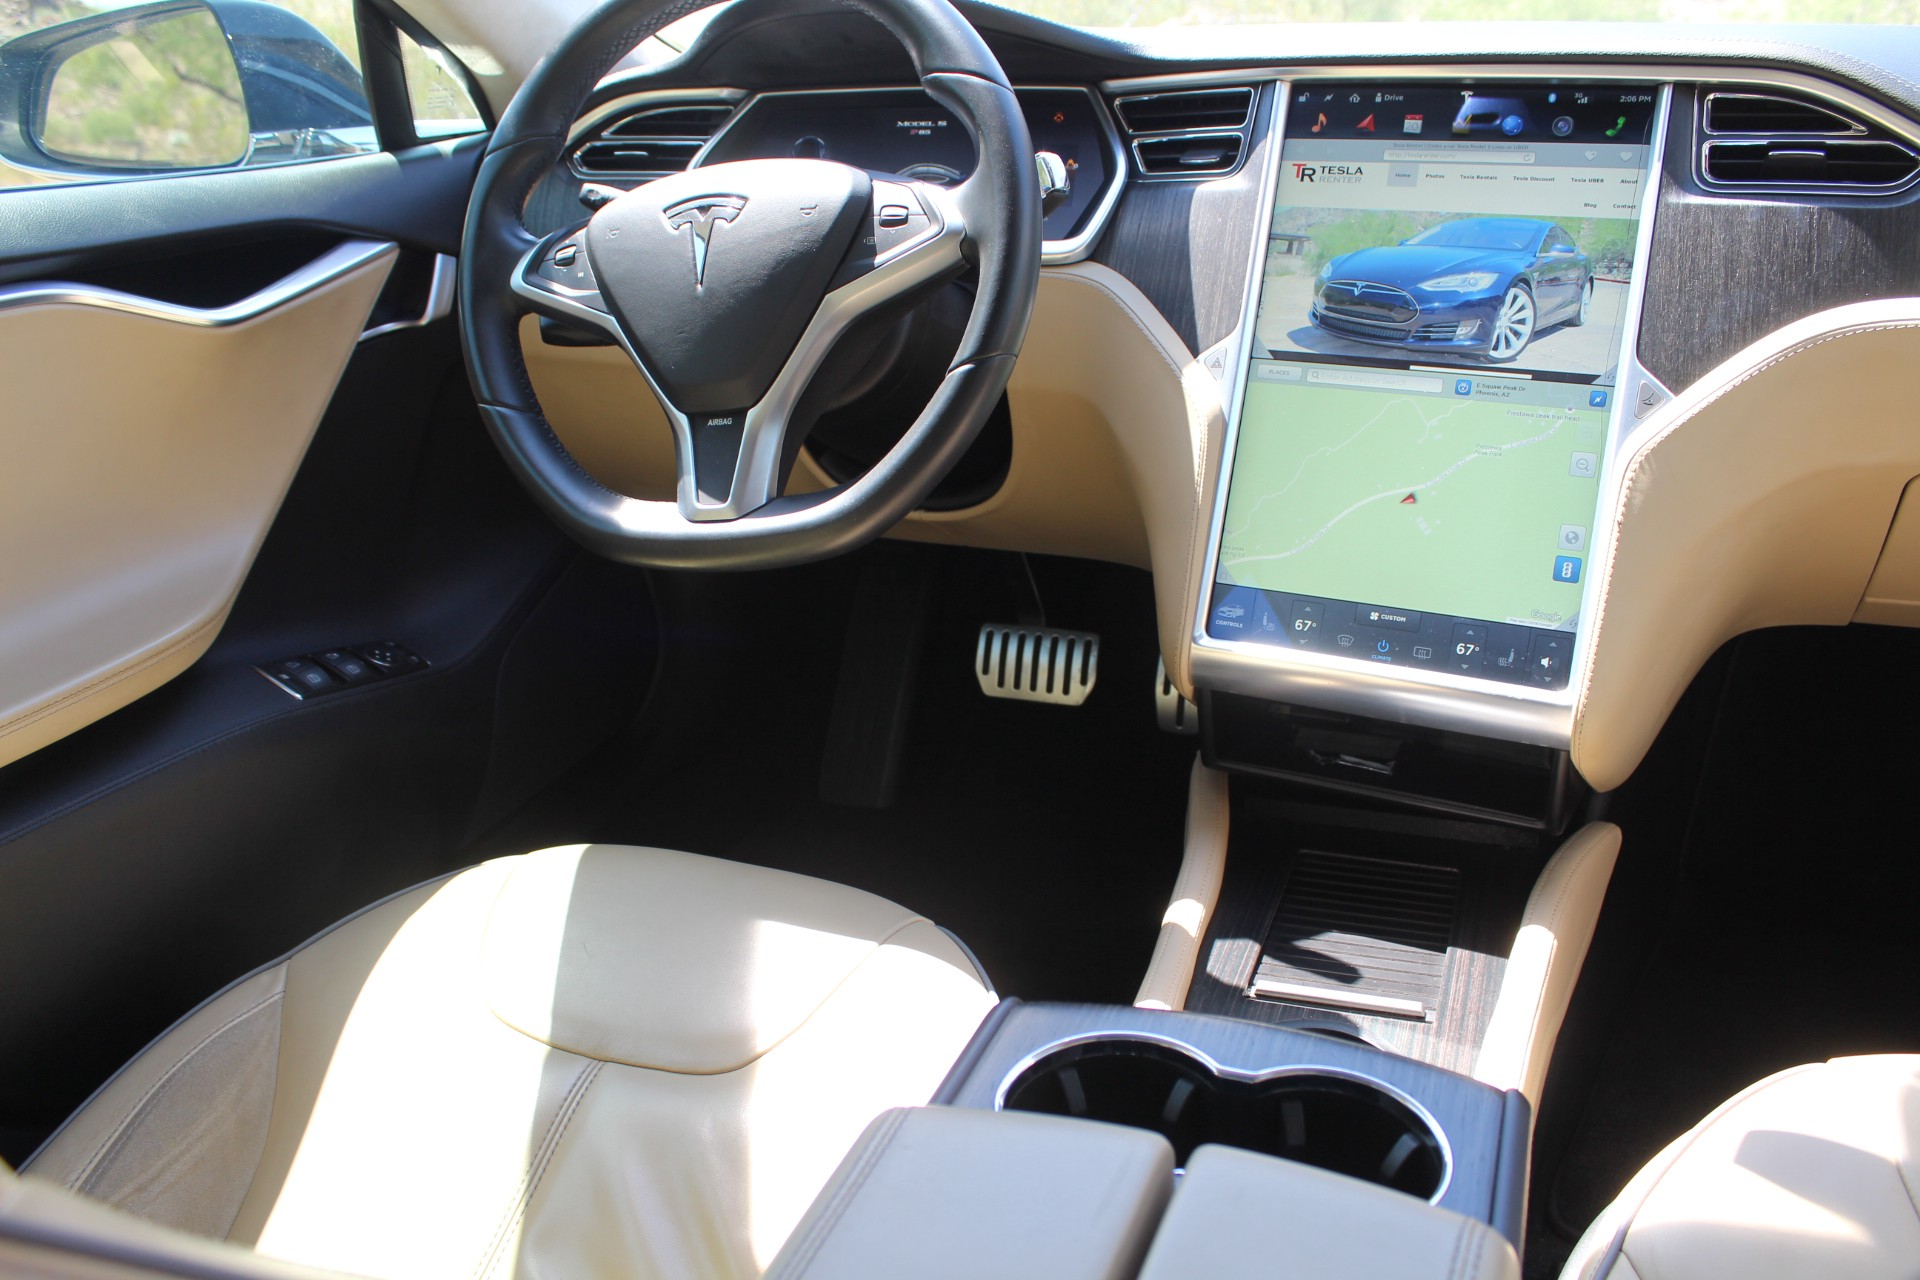 How I Used & Abused My Tesla — What a Tesla looks like after 100,000